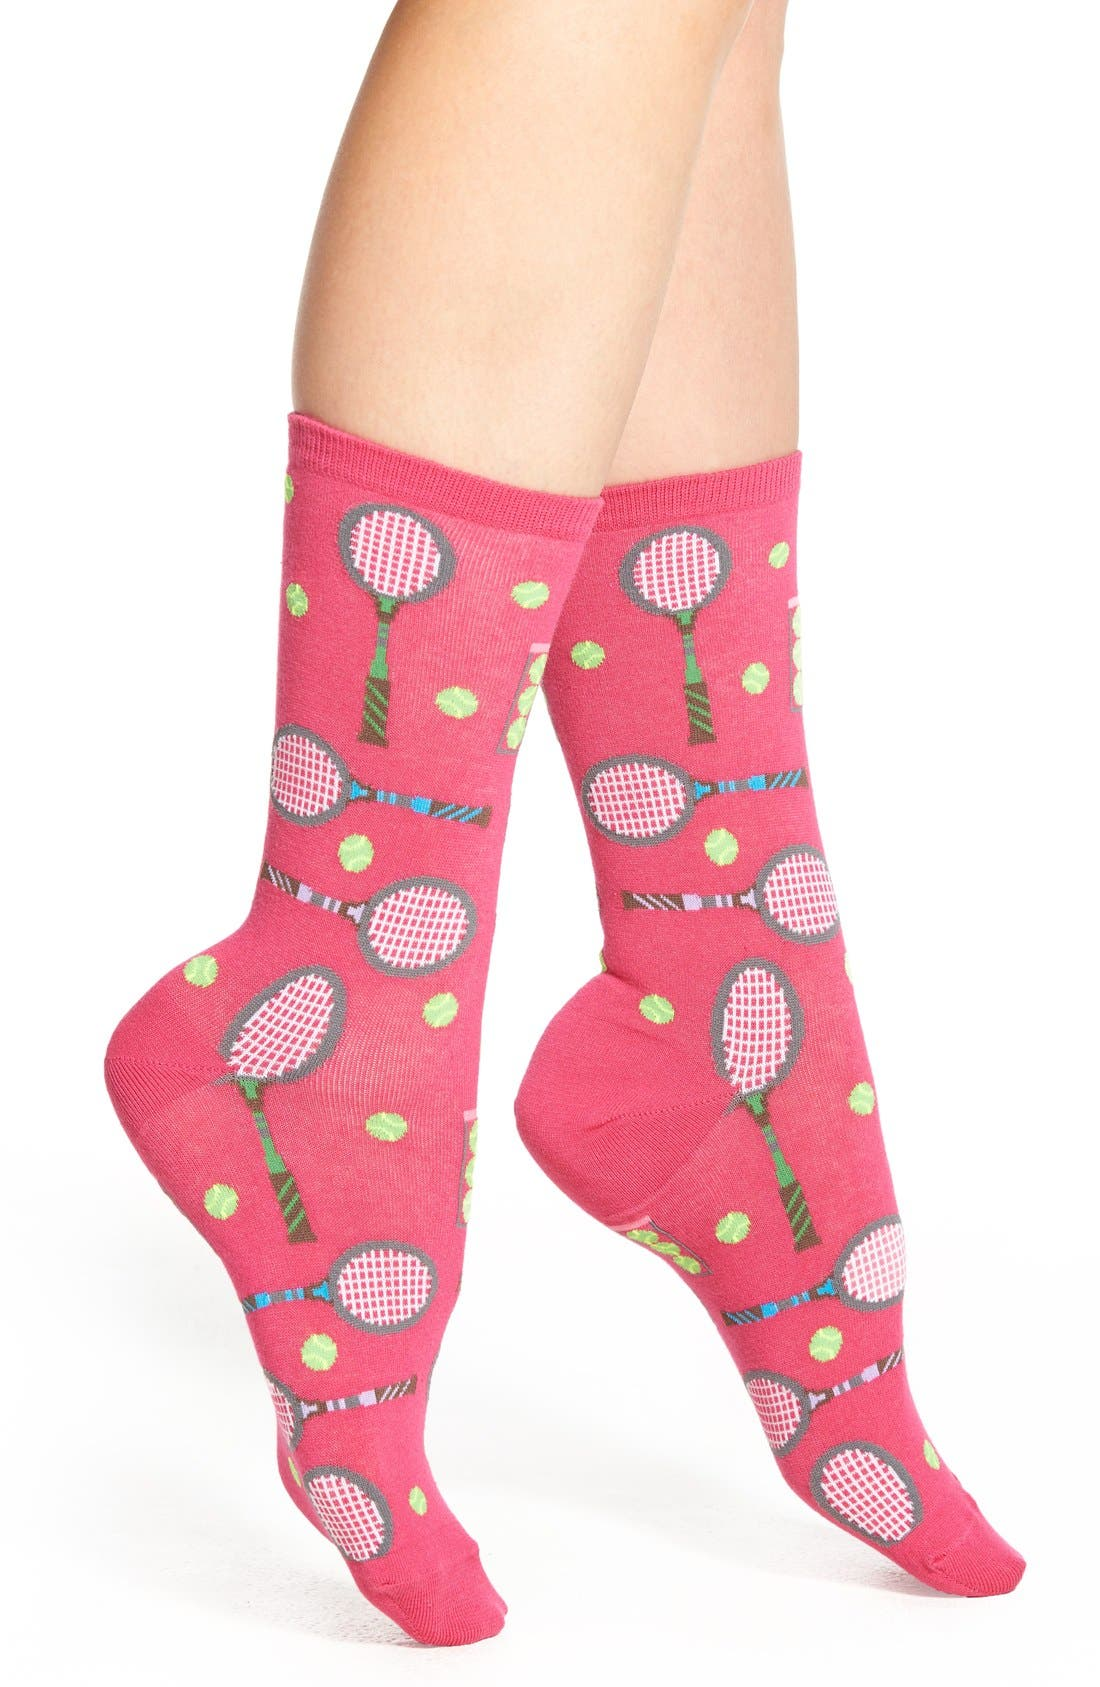 Main Image - Hot Sox 'Tennis' Crew Socks